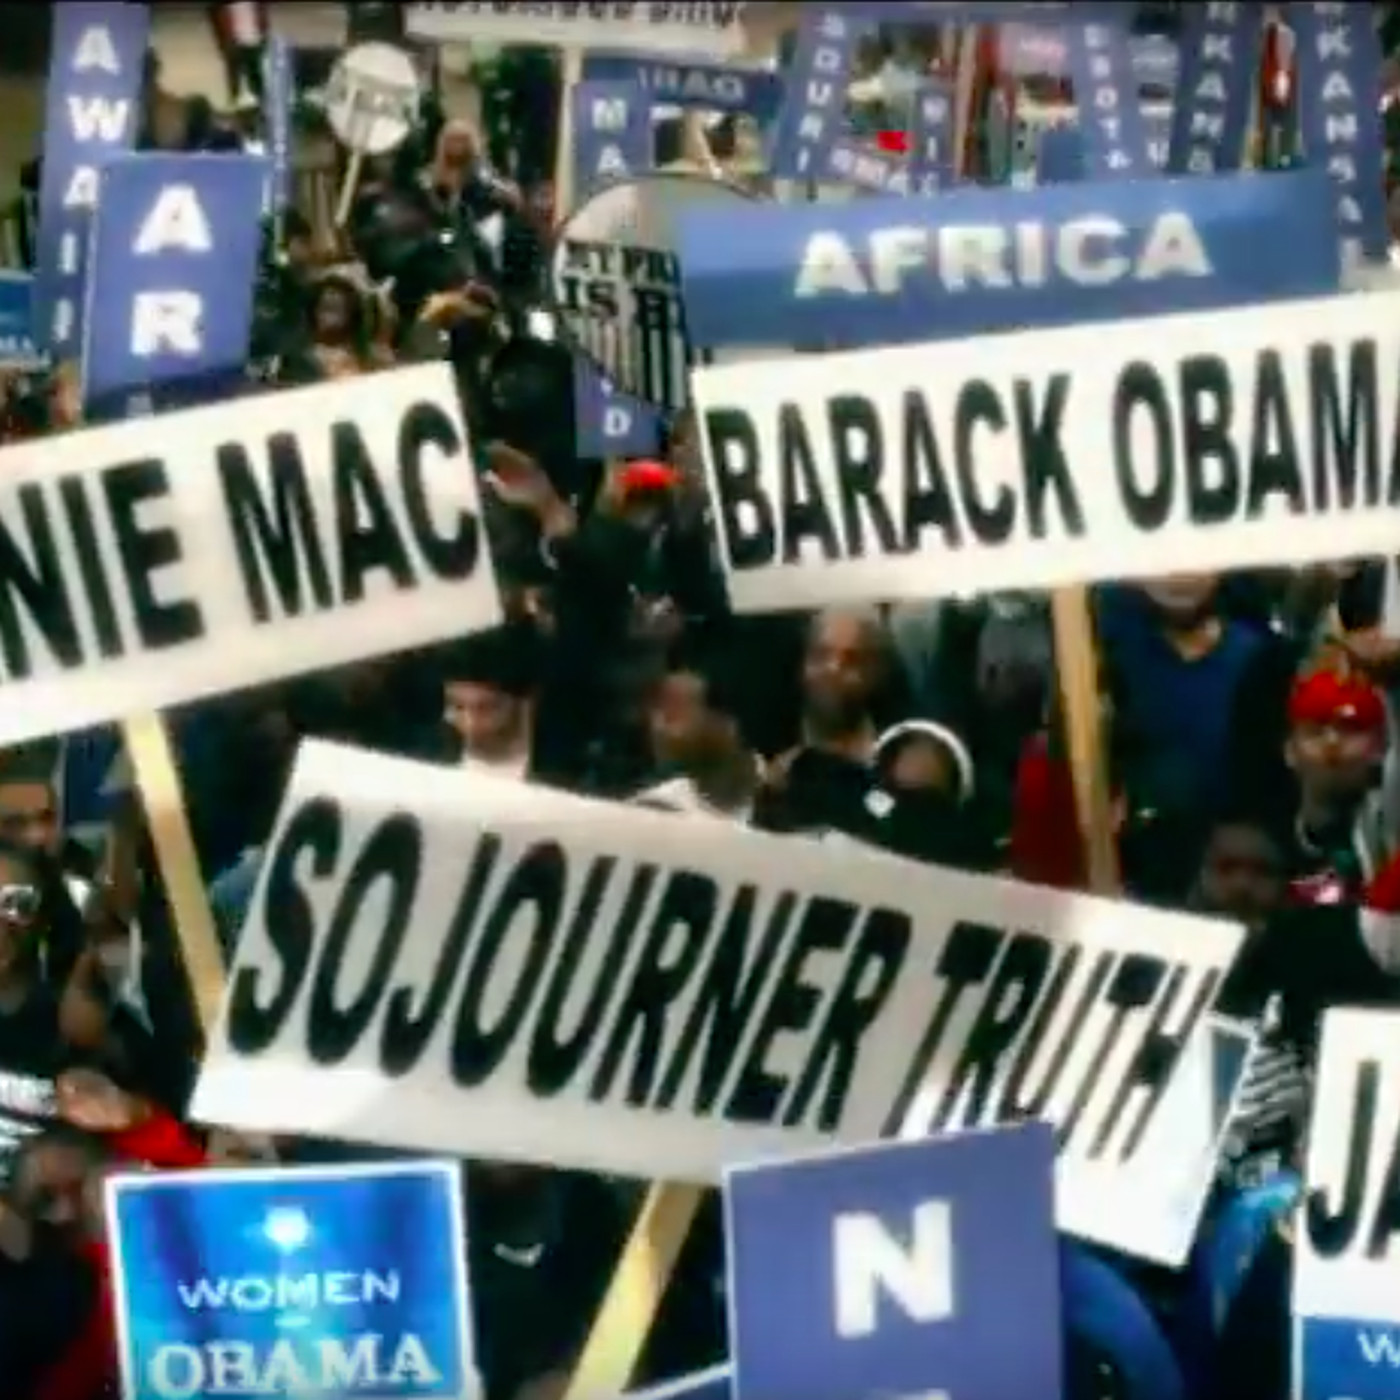 Barack Obama /'08 Official Hope Change Campaign Rally Sign Placard President 2008